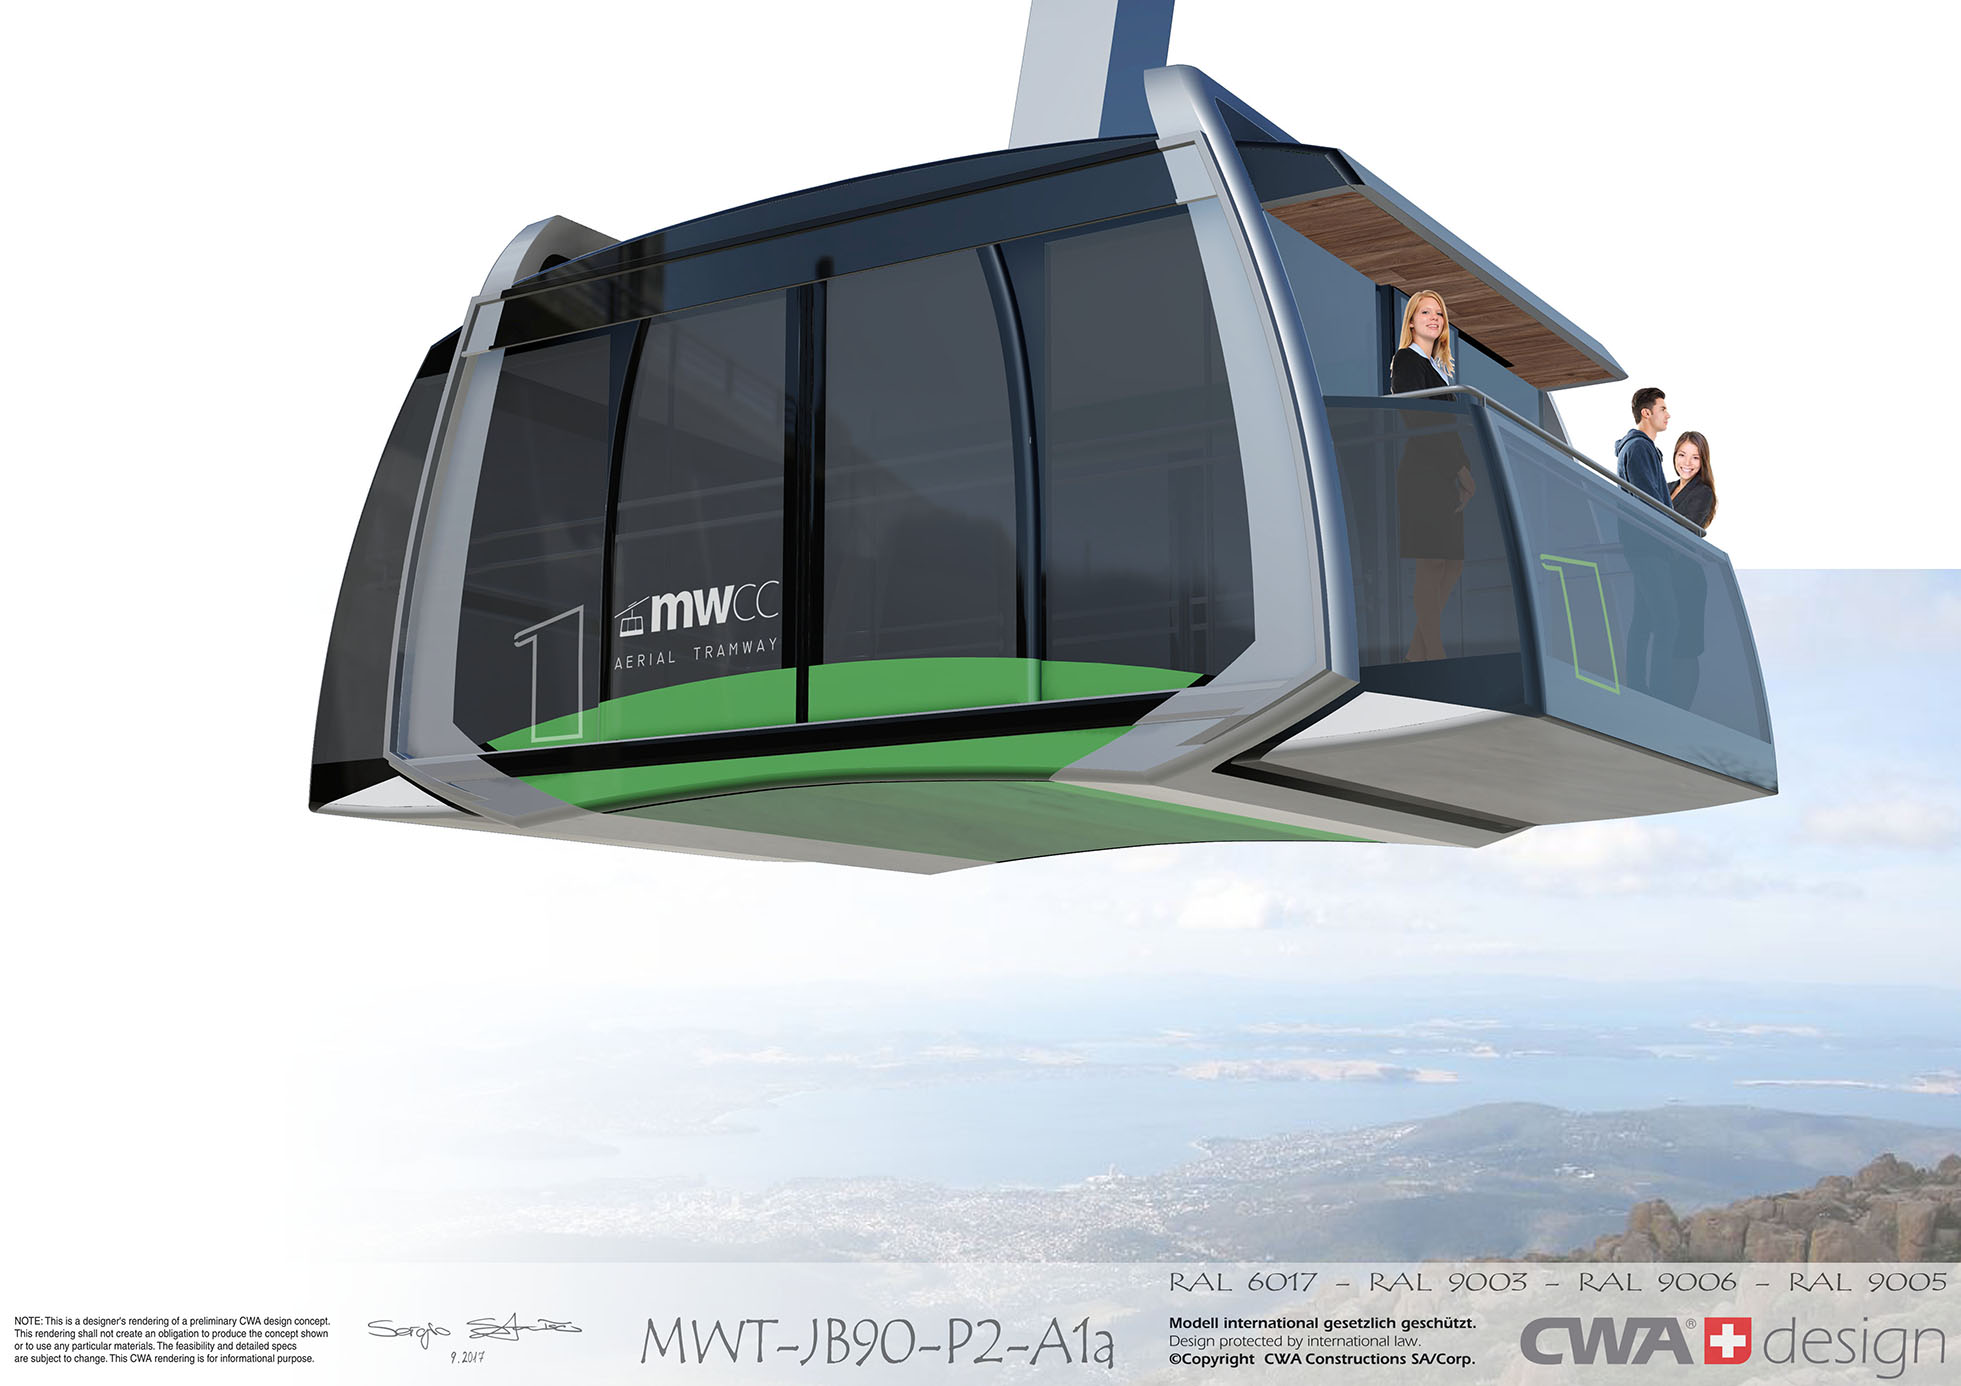 MWCC 'Skytram' - city-facing open-air deck